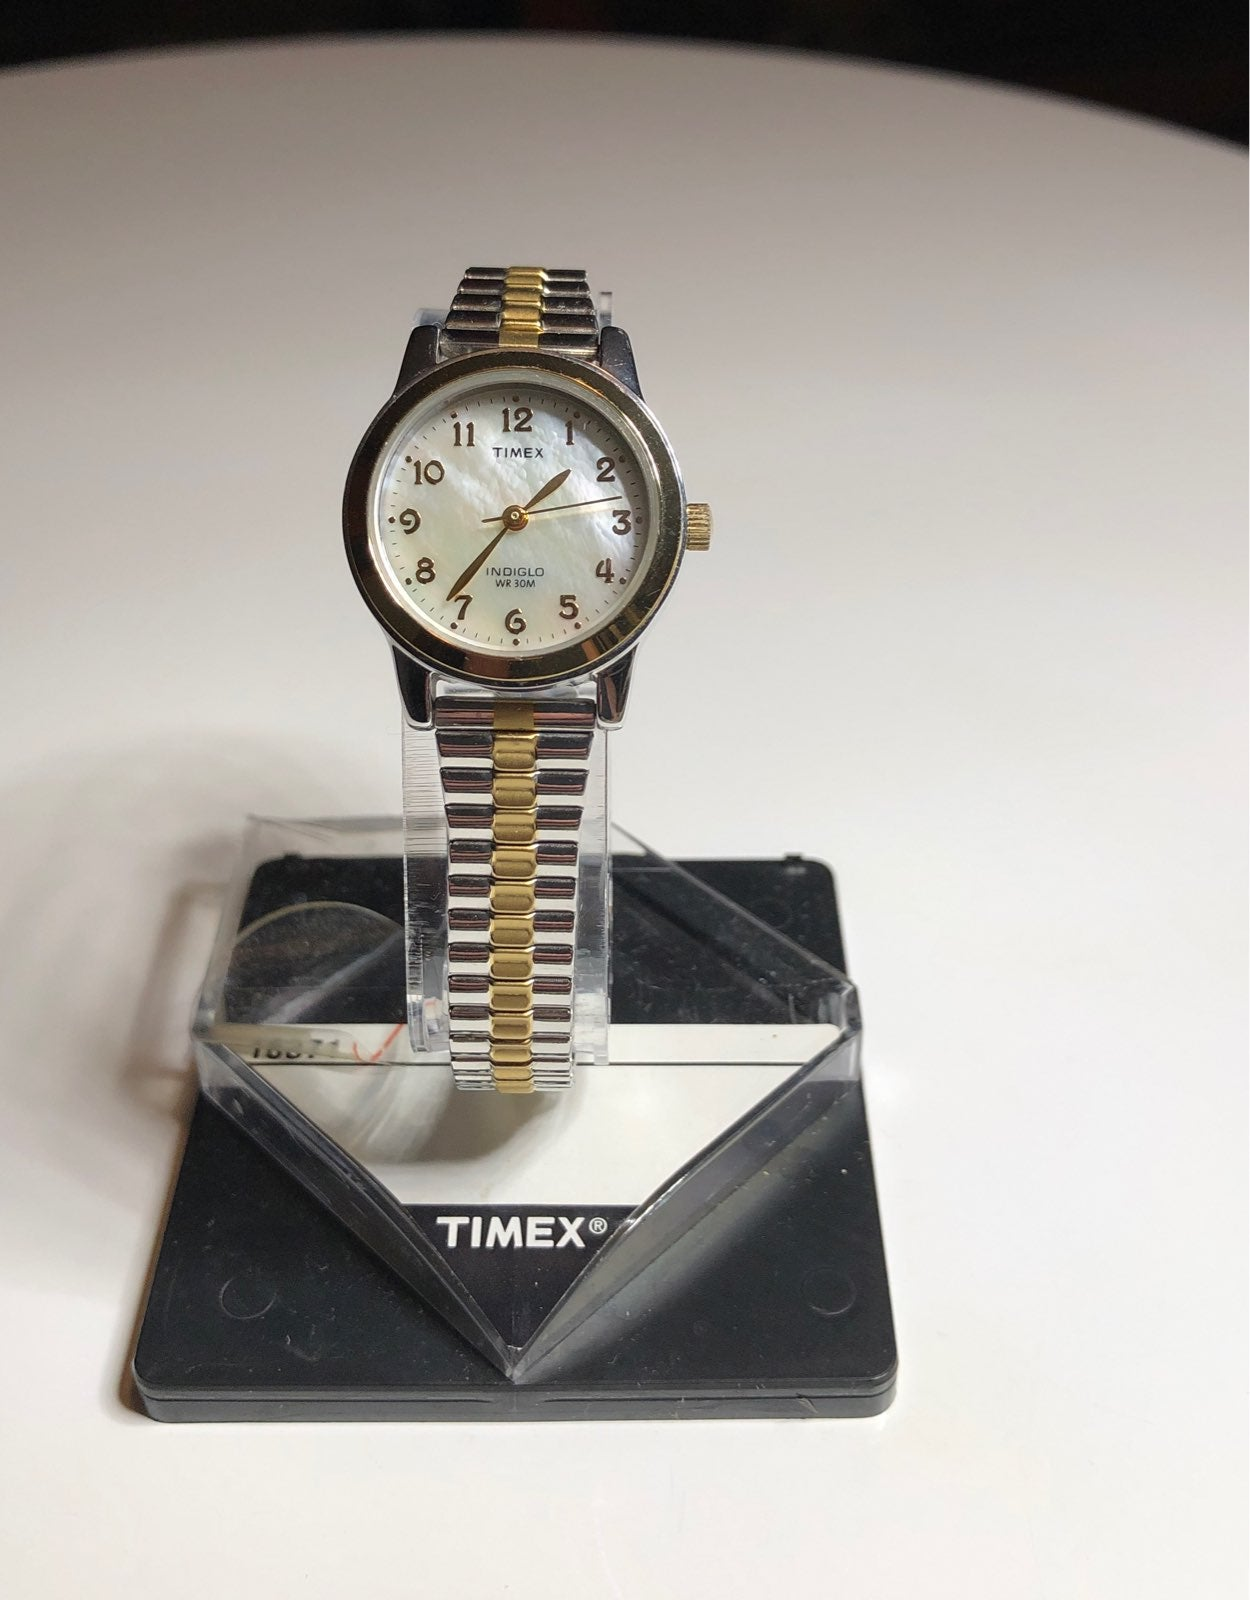 Timex T2M828 Indiglo MOP Dial Watch